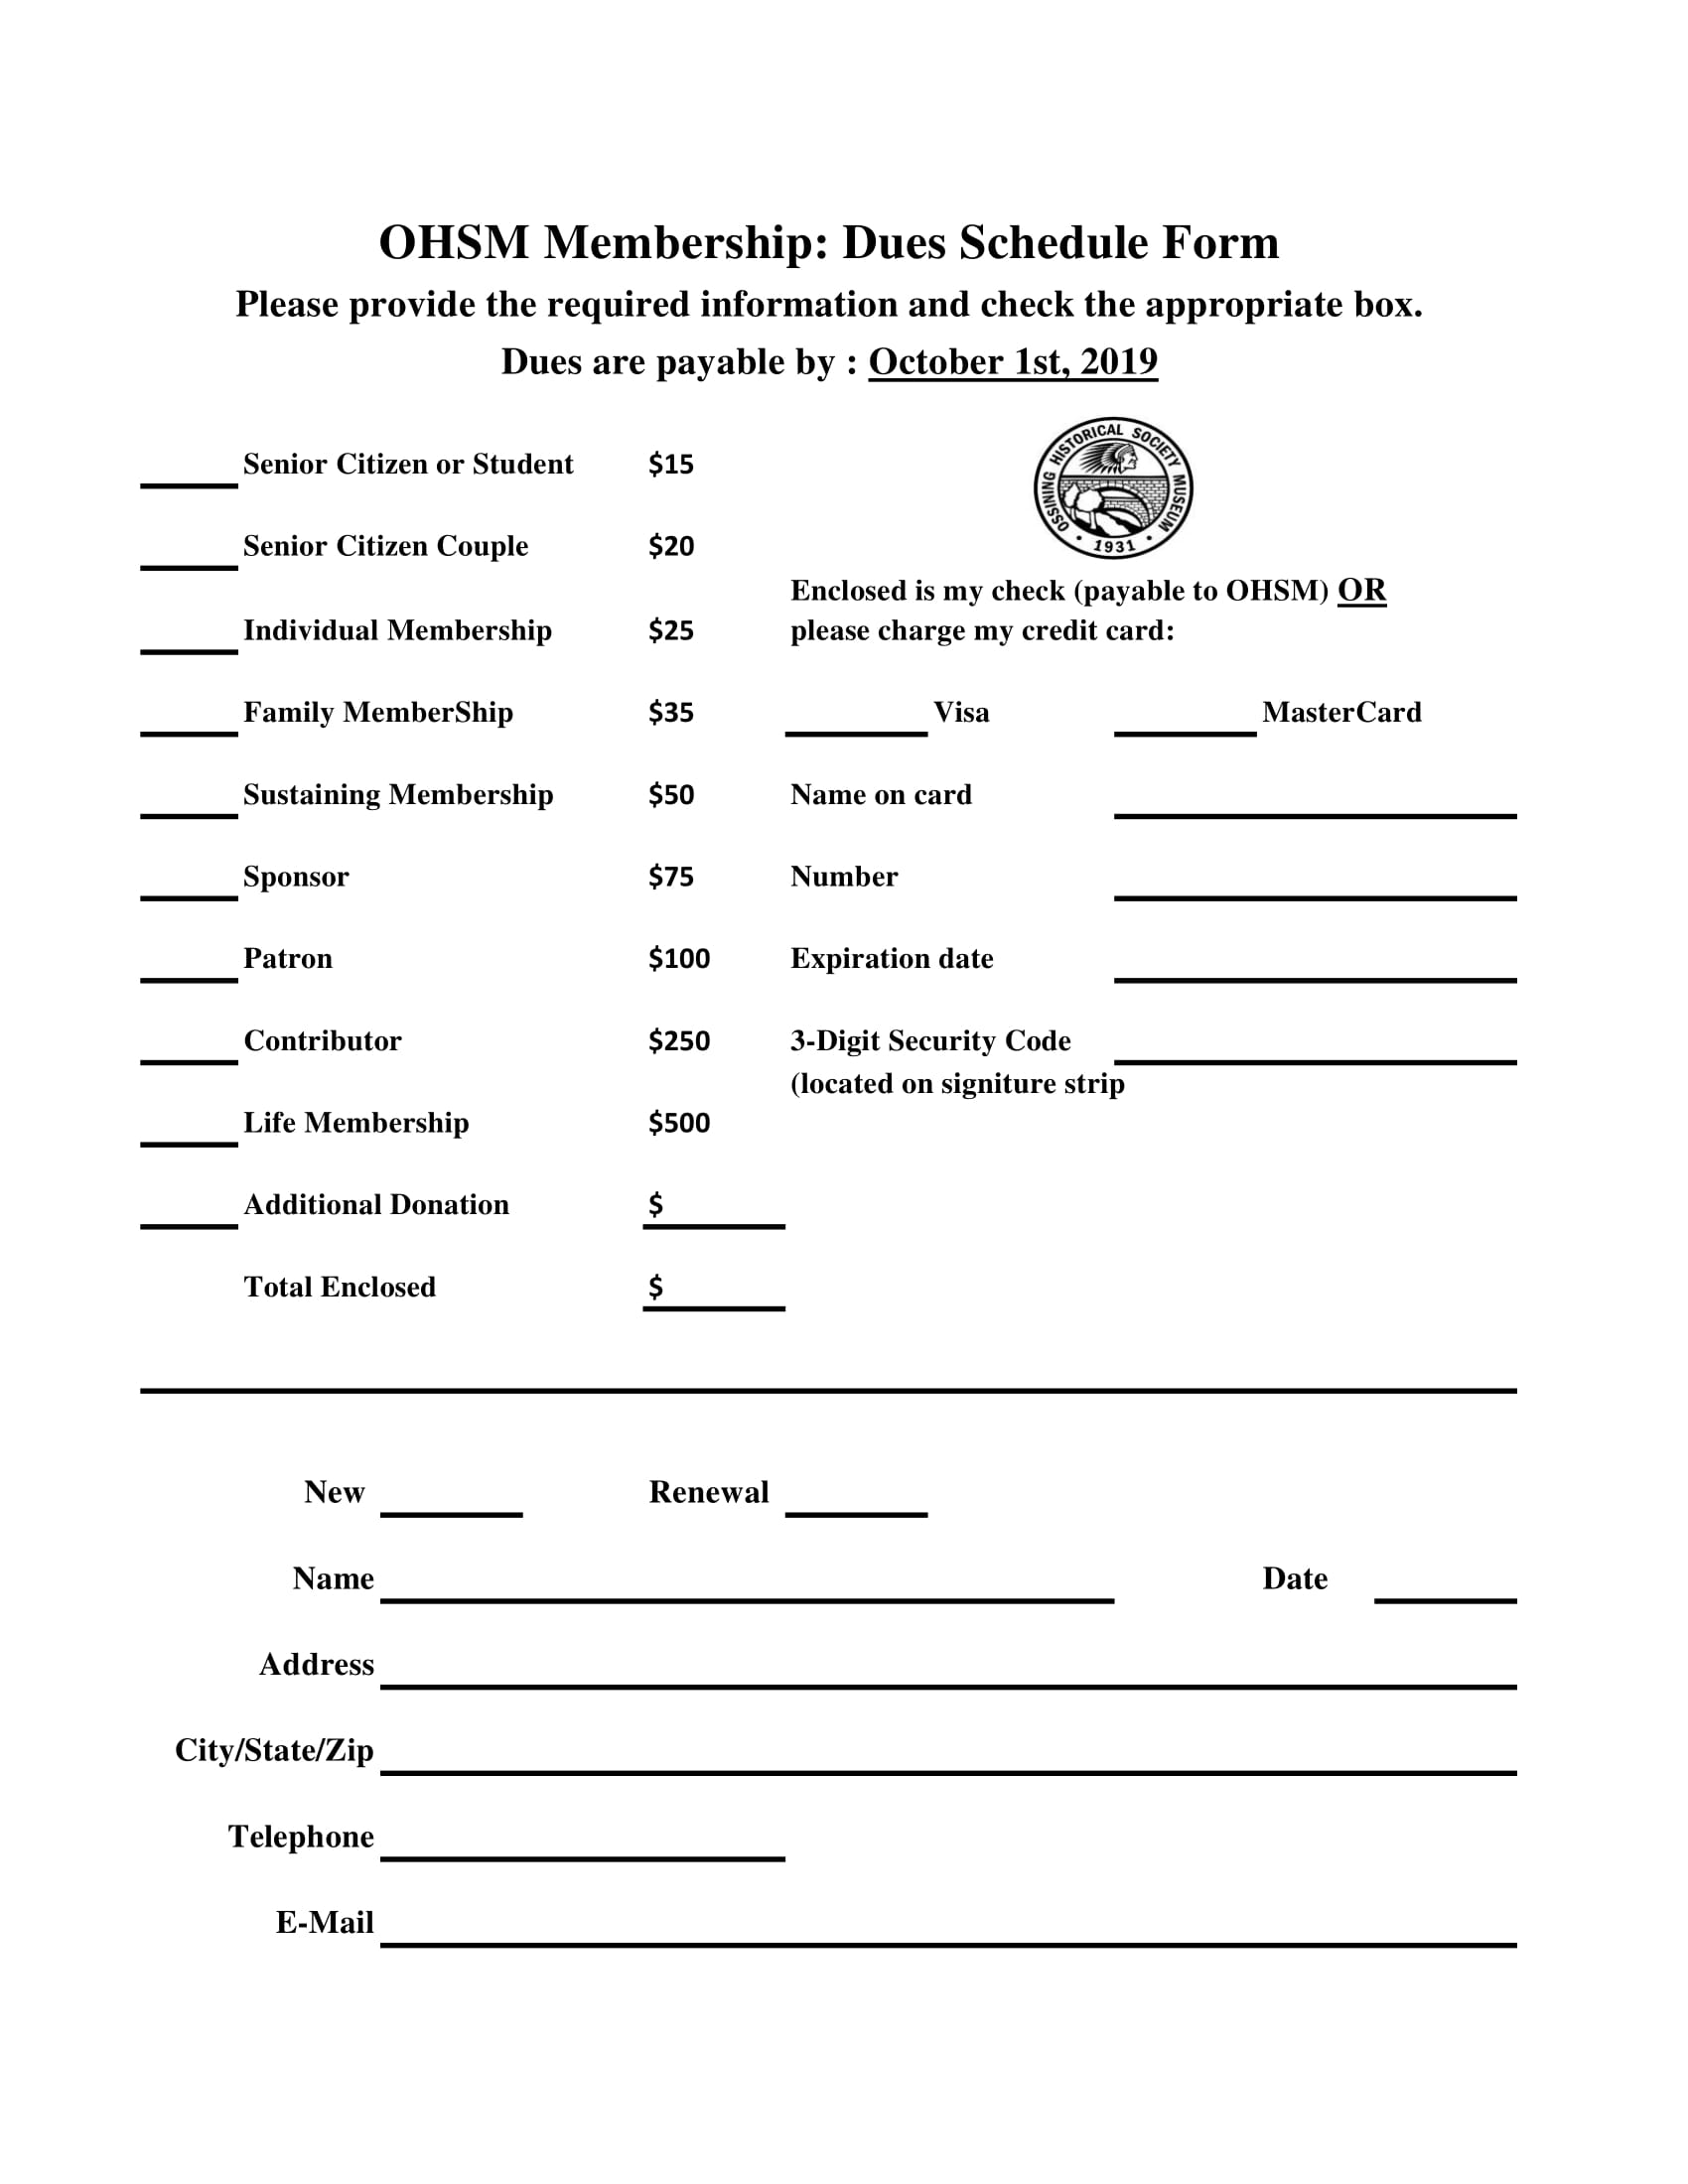 Click Document - To download your printable Membership form